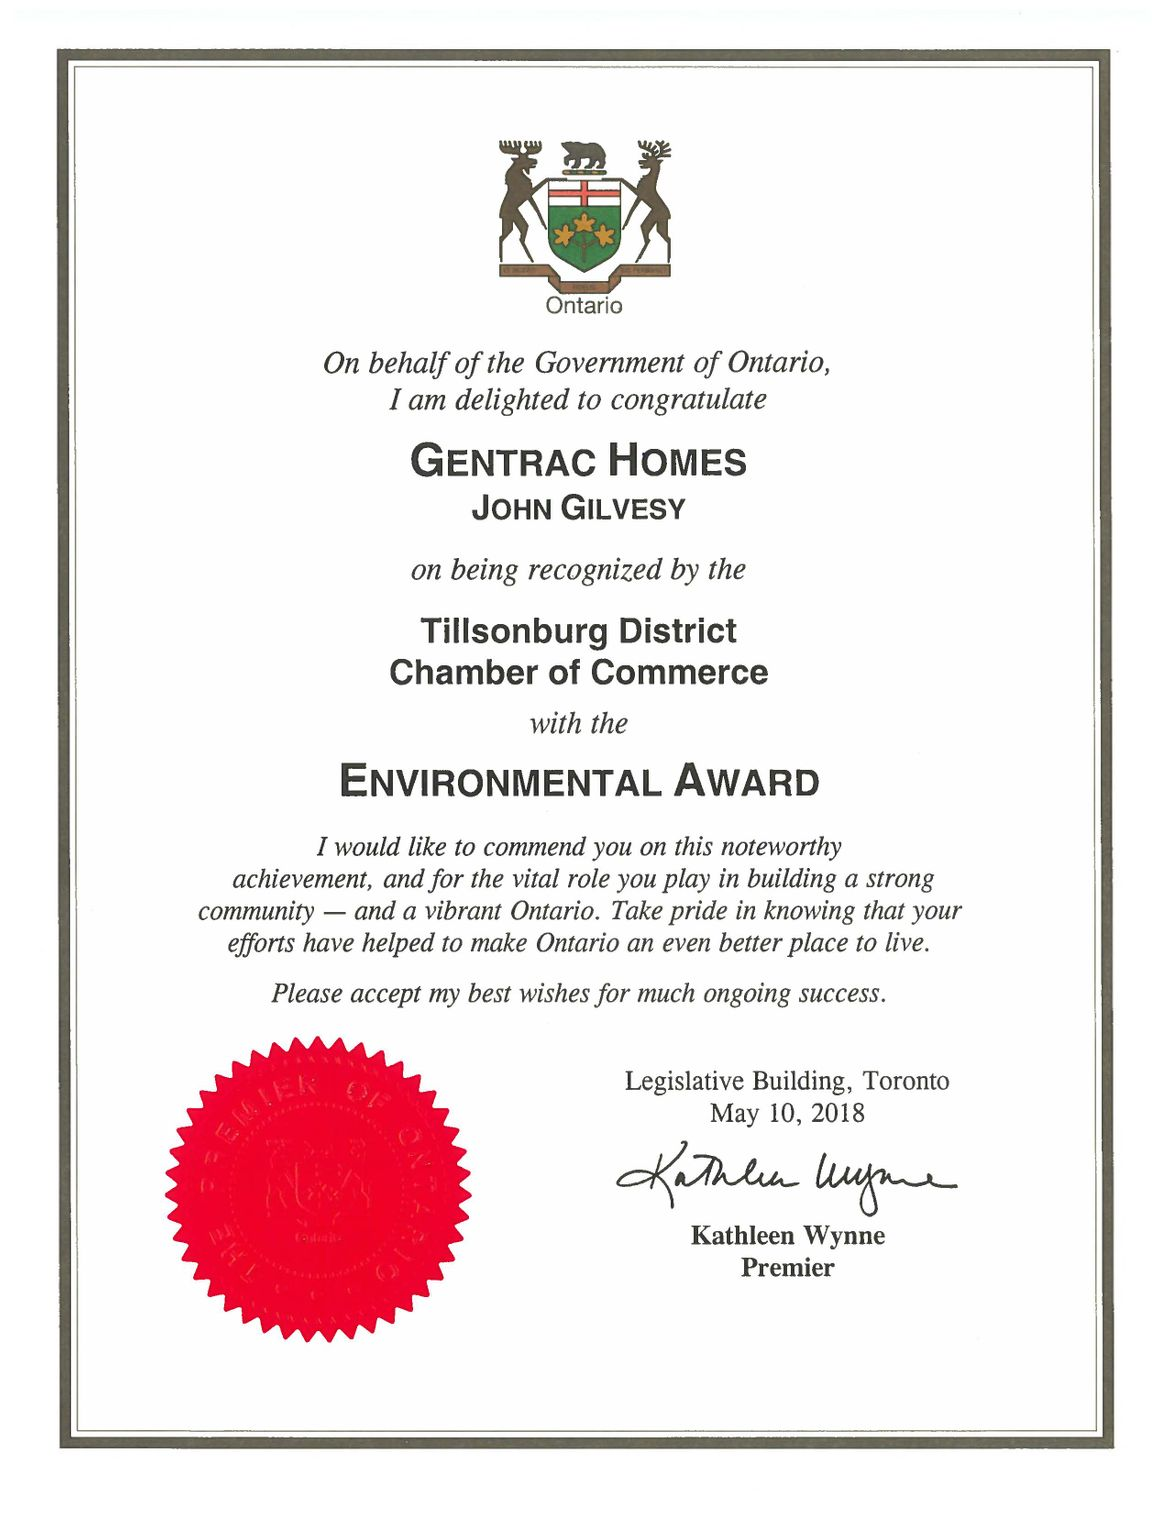 Province Certificate Re Environmental Award